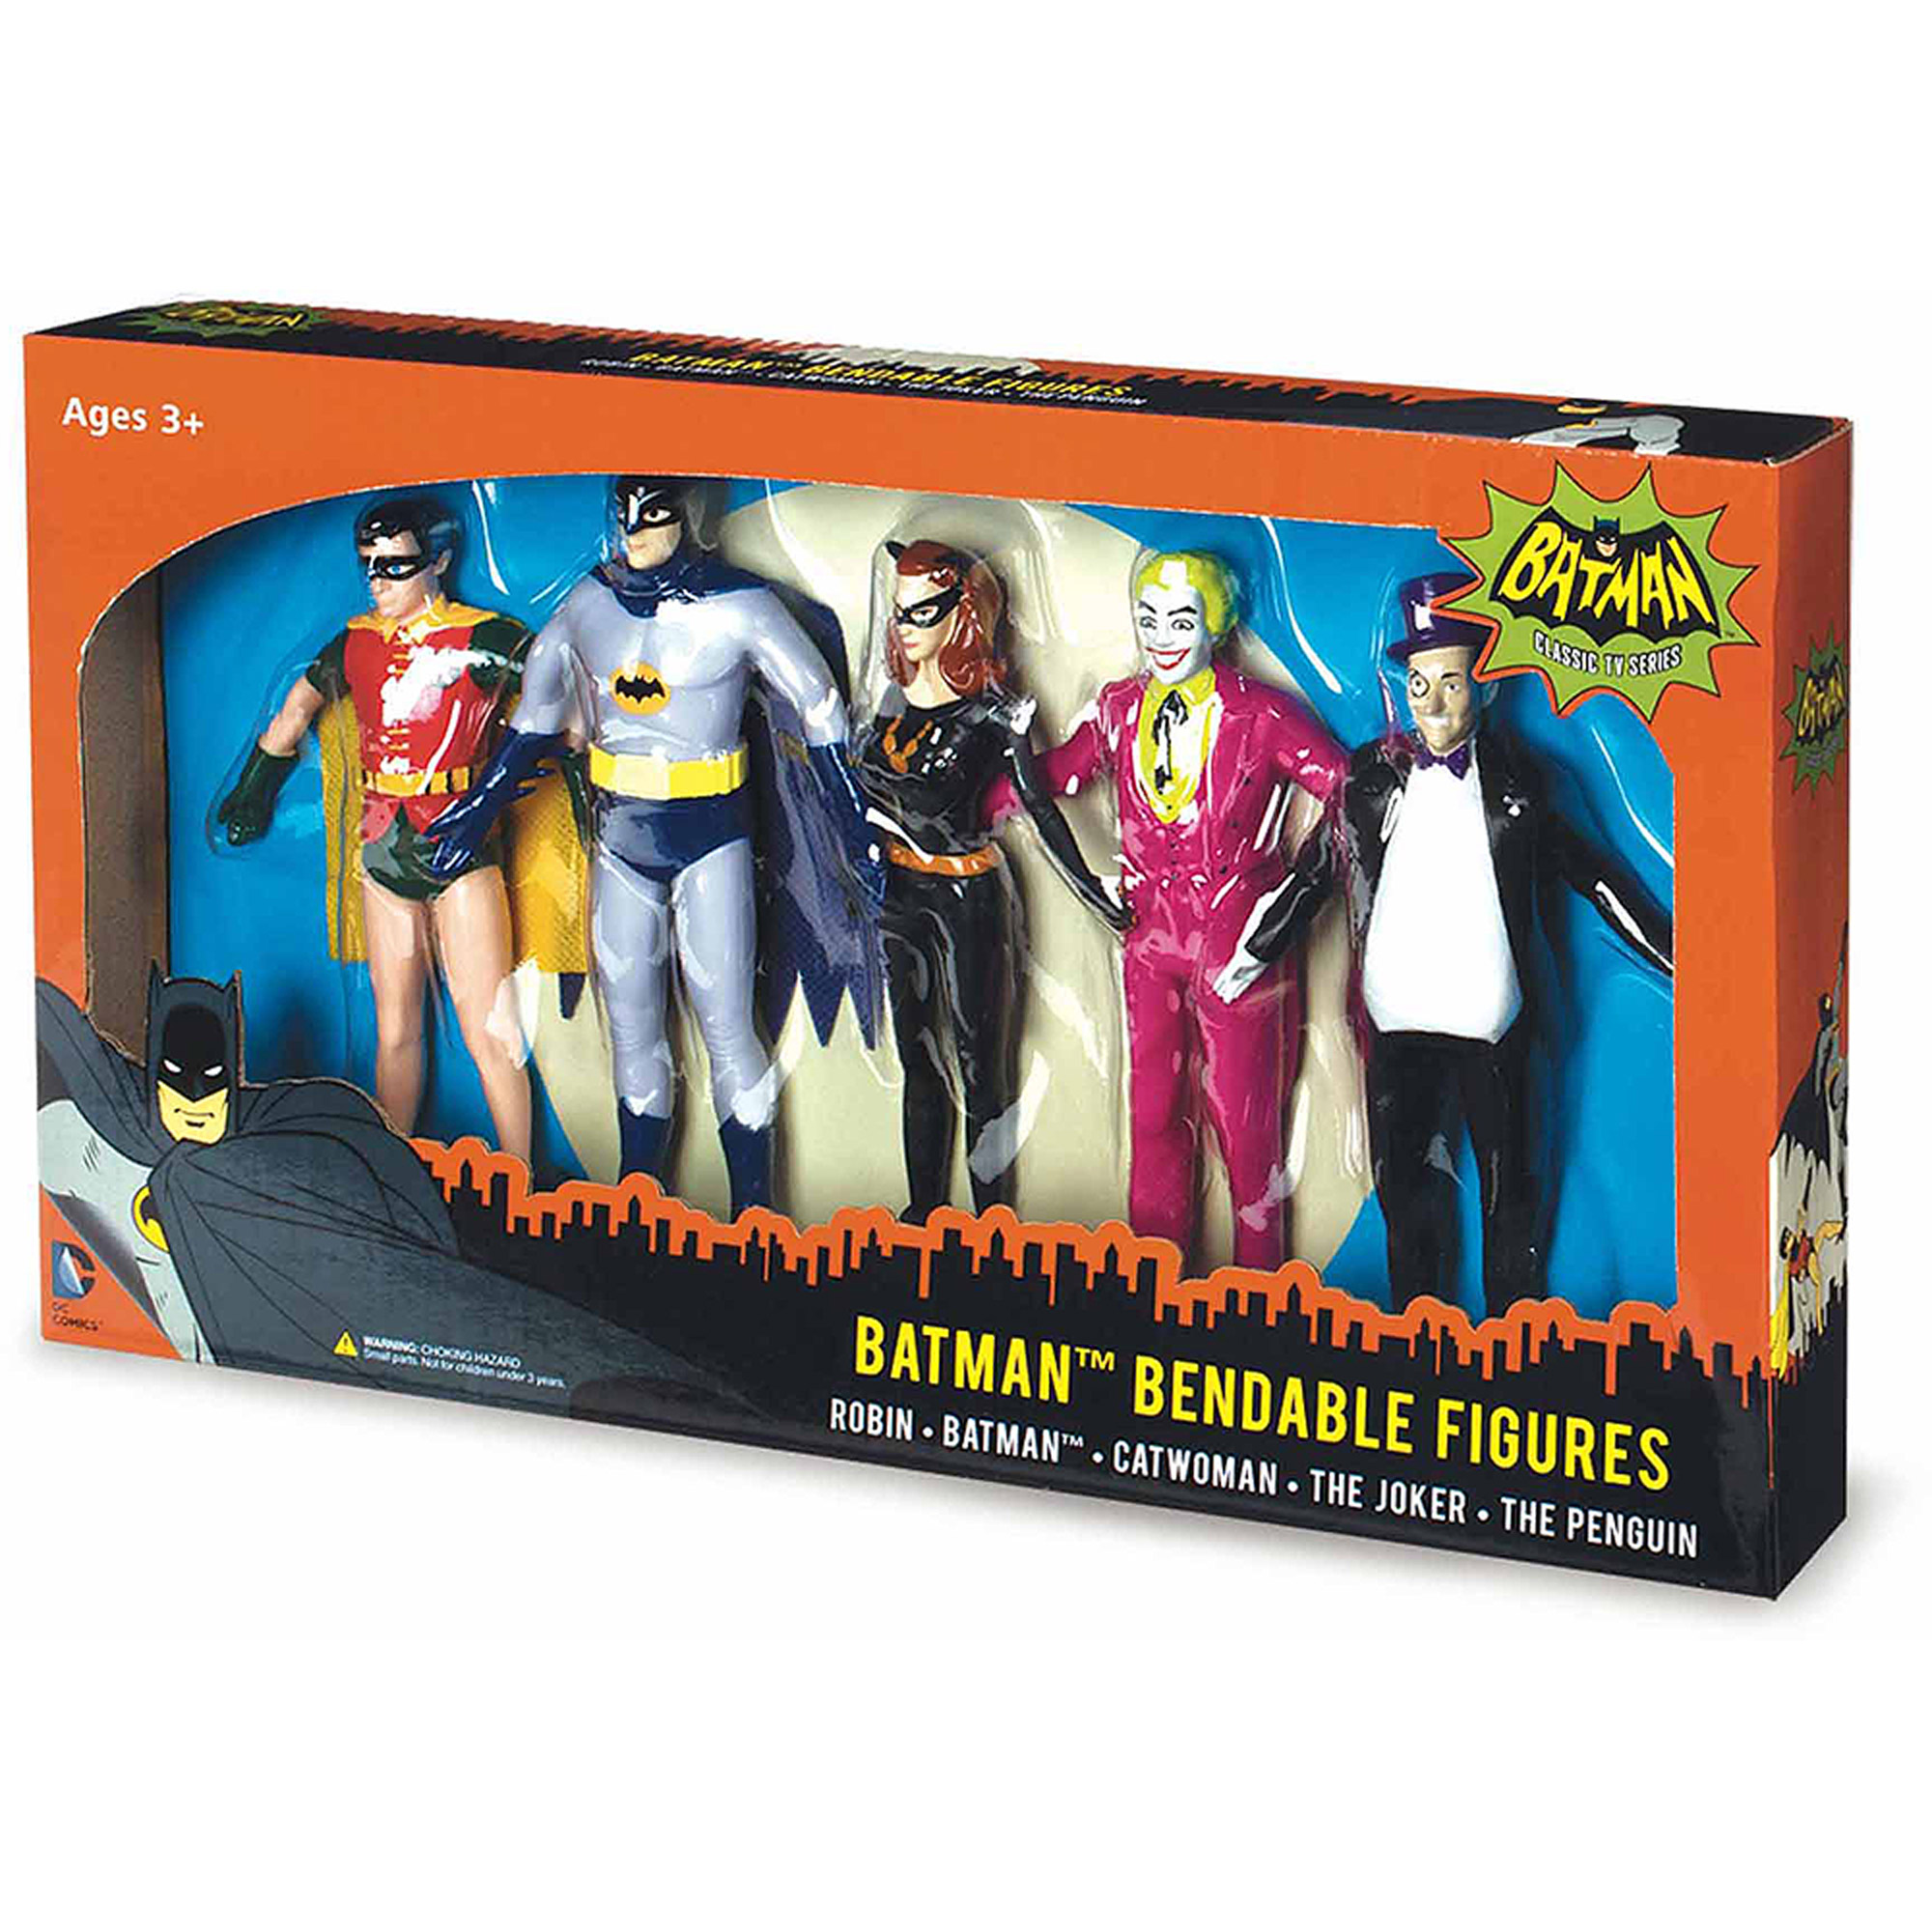 NJ Croce Batman Classic TV Series Bendable Boxed Set, Batman, Robin, Catwoman, The Joker and The Penguin